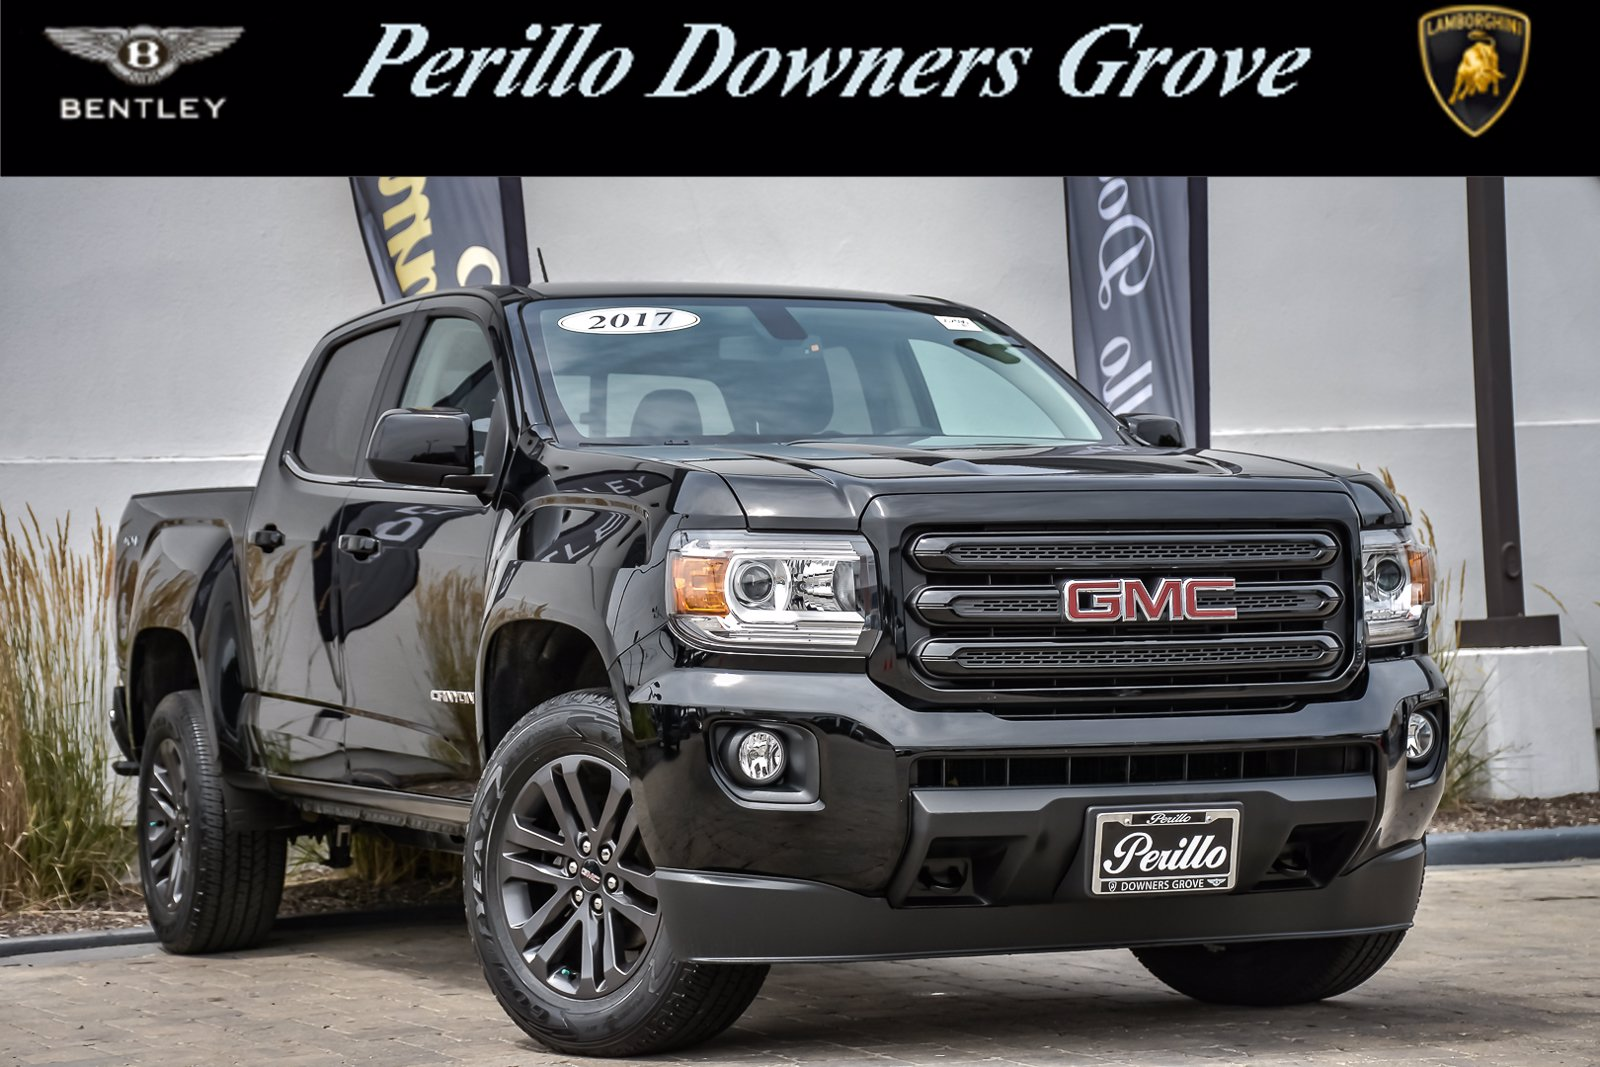 Pre-Owned 2017 GMC Canyon 4WD SLE Crew Cab Nightfall Edition